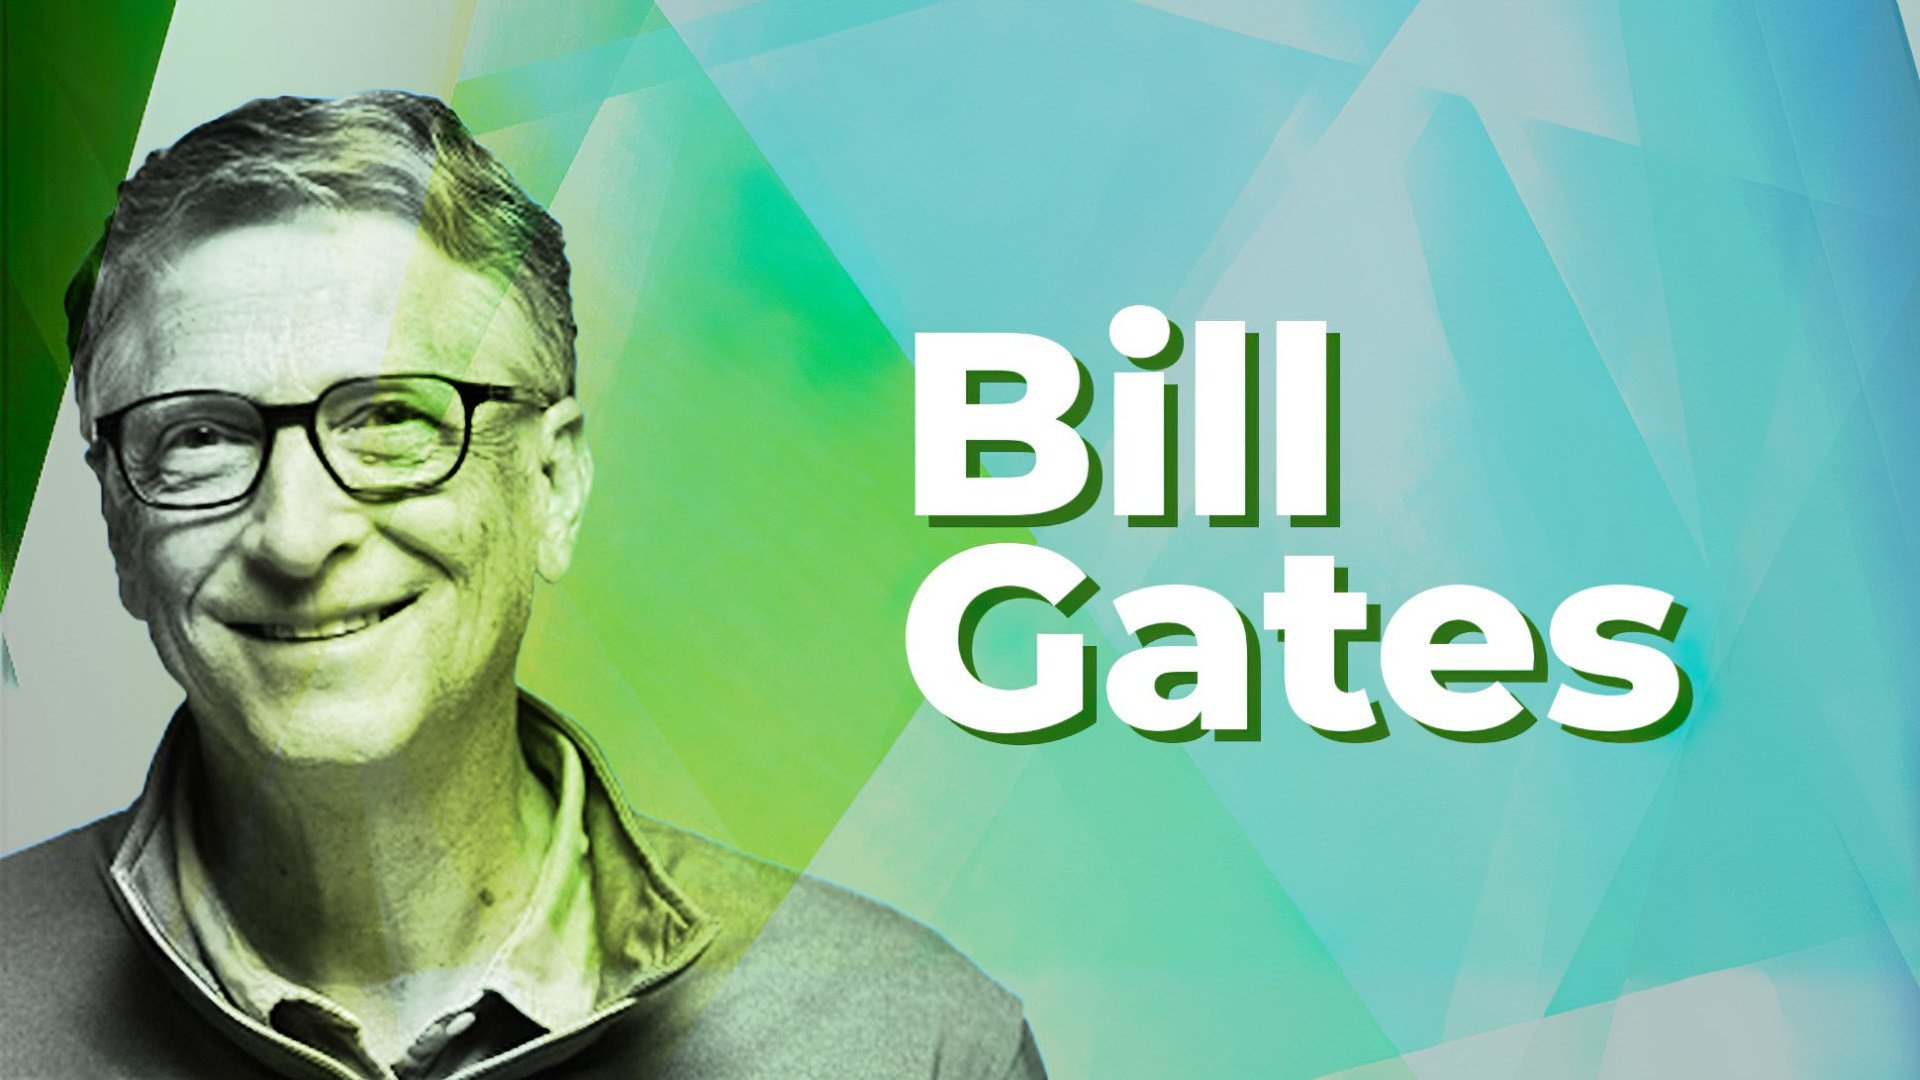 Microsoft, Microsoft Corporation, Bill Gates, Gates, bill & melinda gates foundation, William Henry Gates